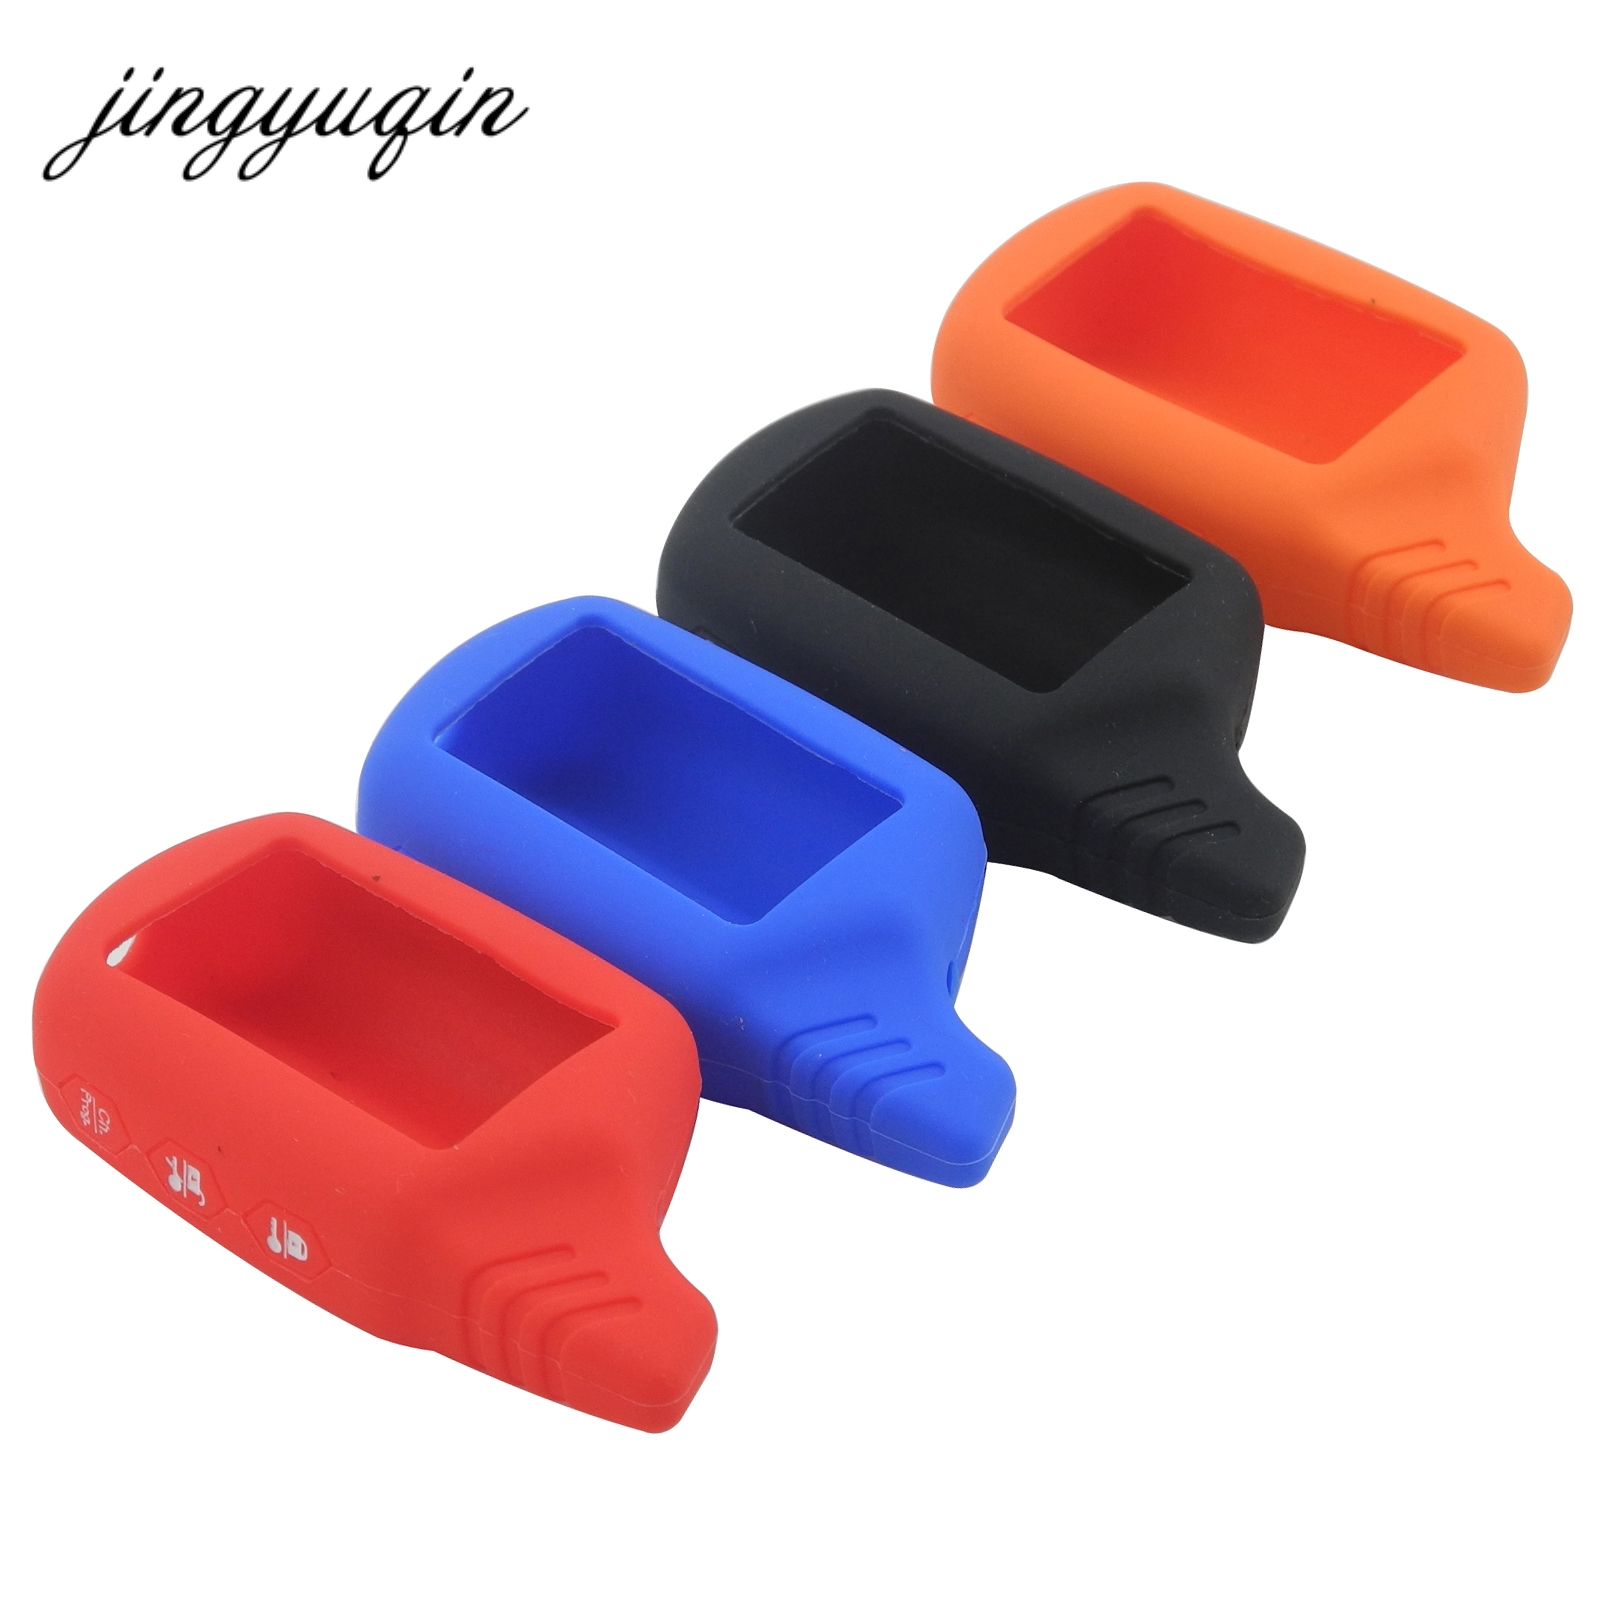 jingyuqin Key Cover B9/B6 Silicone Case for Starline B91/B61/A91/A61 KGB FX-5 Jaguar ez-one LCD Keychain Car Remote 2 Way Alarm wireless barcode scanner bar code reader 2 4g 10m laser barcode scanner wireless wired for windows ce blueskysea free shipping